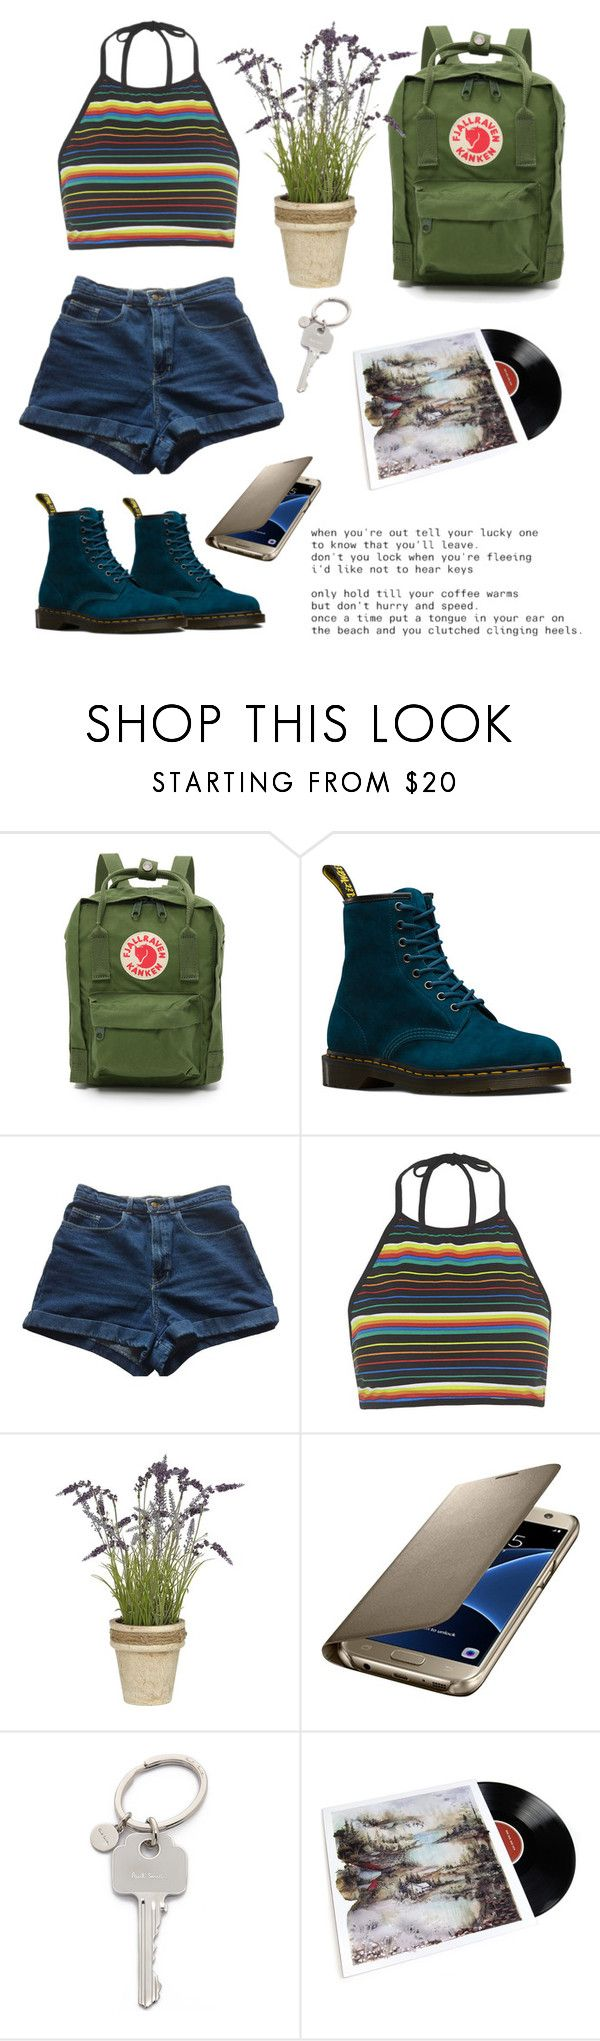 """I'm Sorry I Ever Loved You"" by owlenstar on Polyvore featuring Fjällräven, Dr. Martens, American Apparel, Motel, Samsung and Paul Smith"